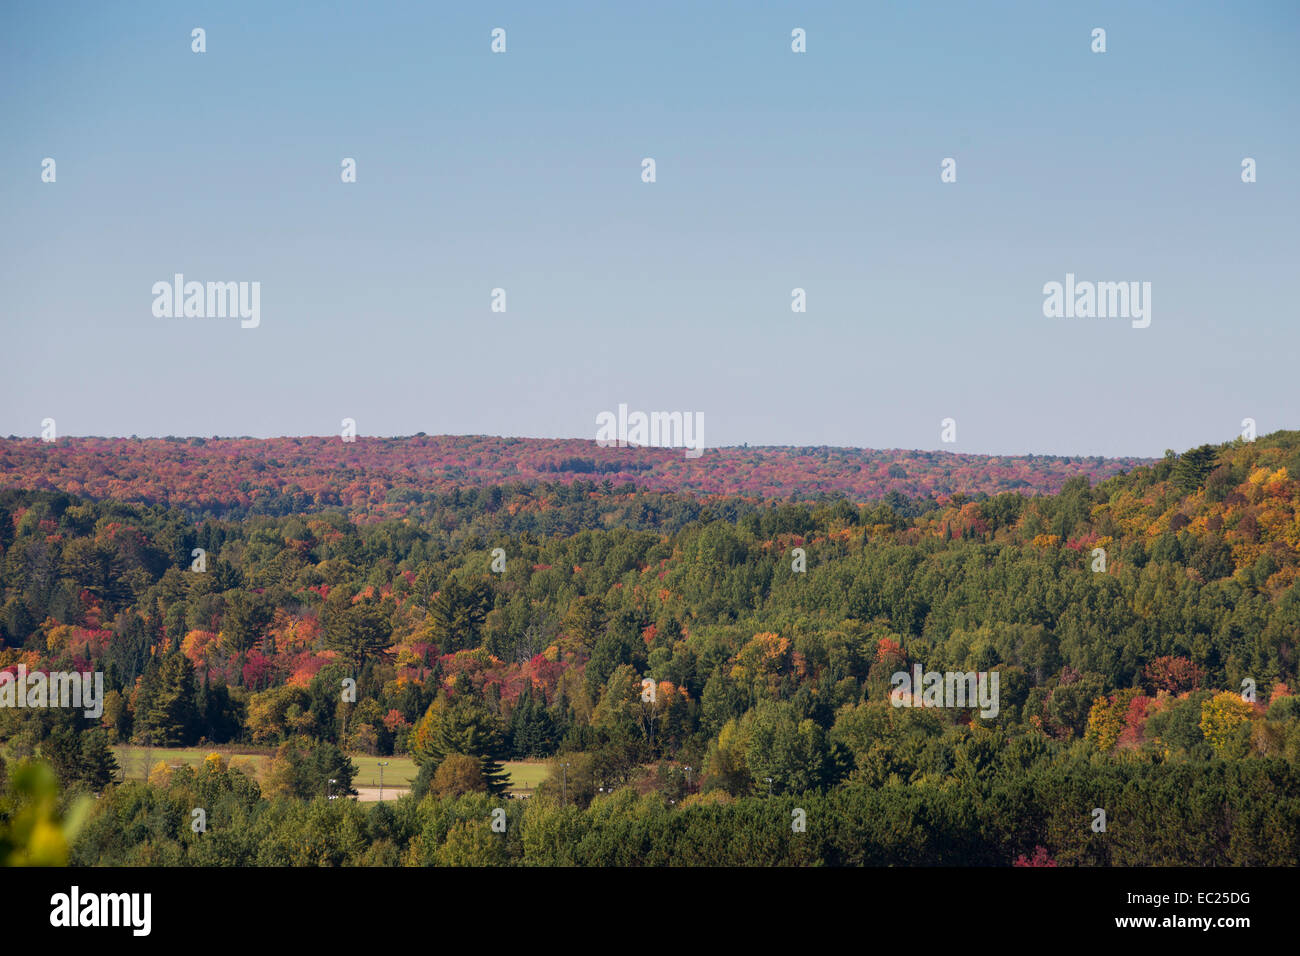 Trees changing color in Ontario in Autumn. - Stock Image